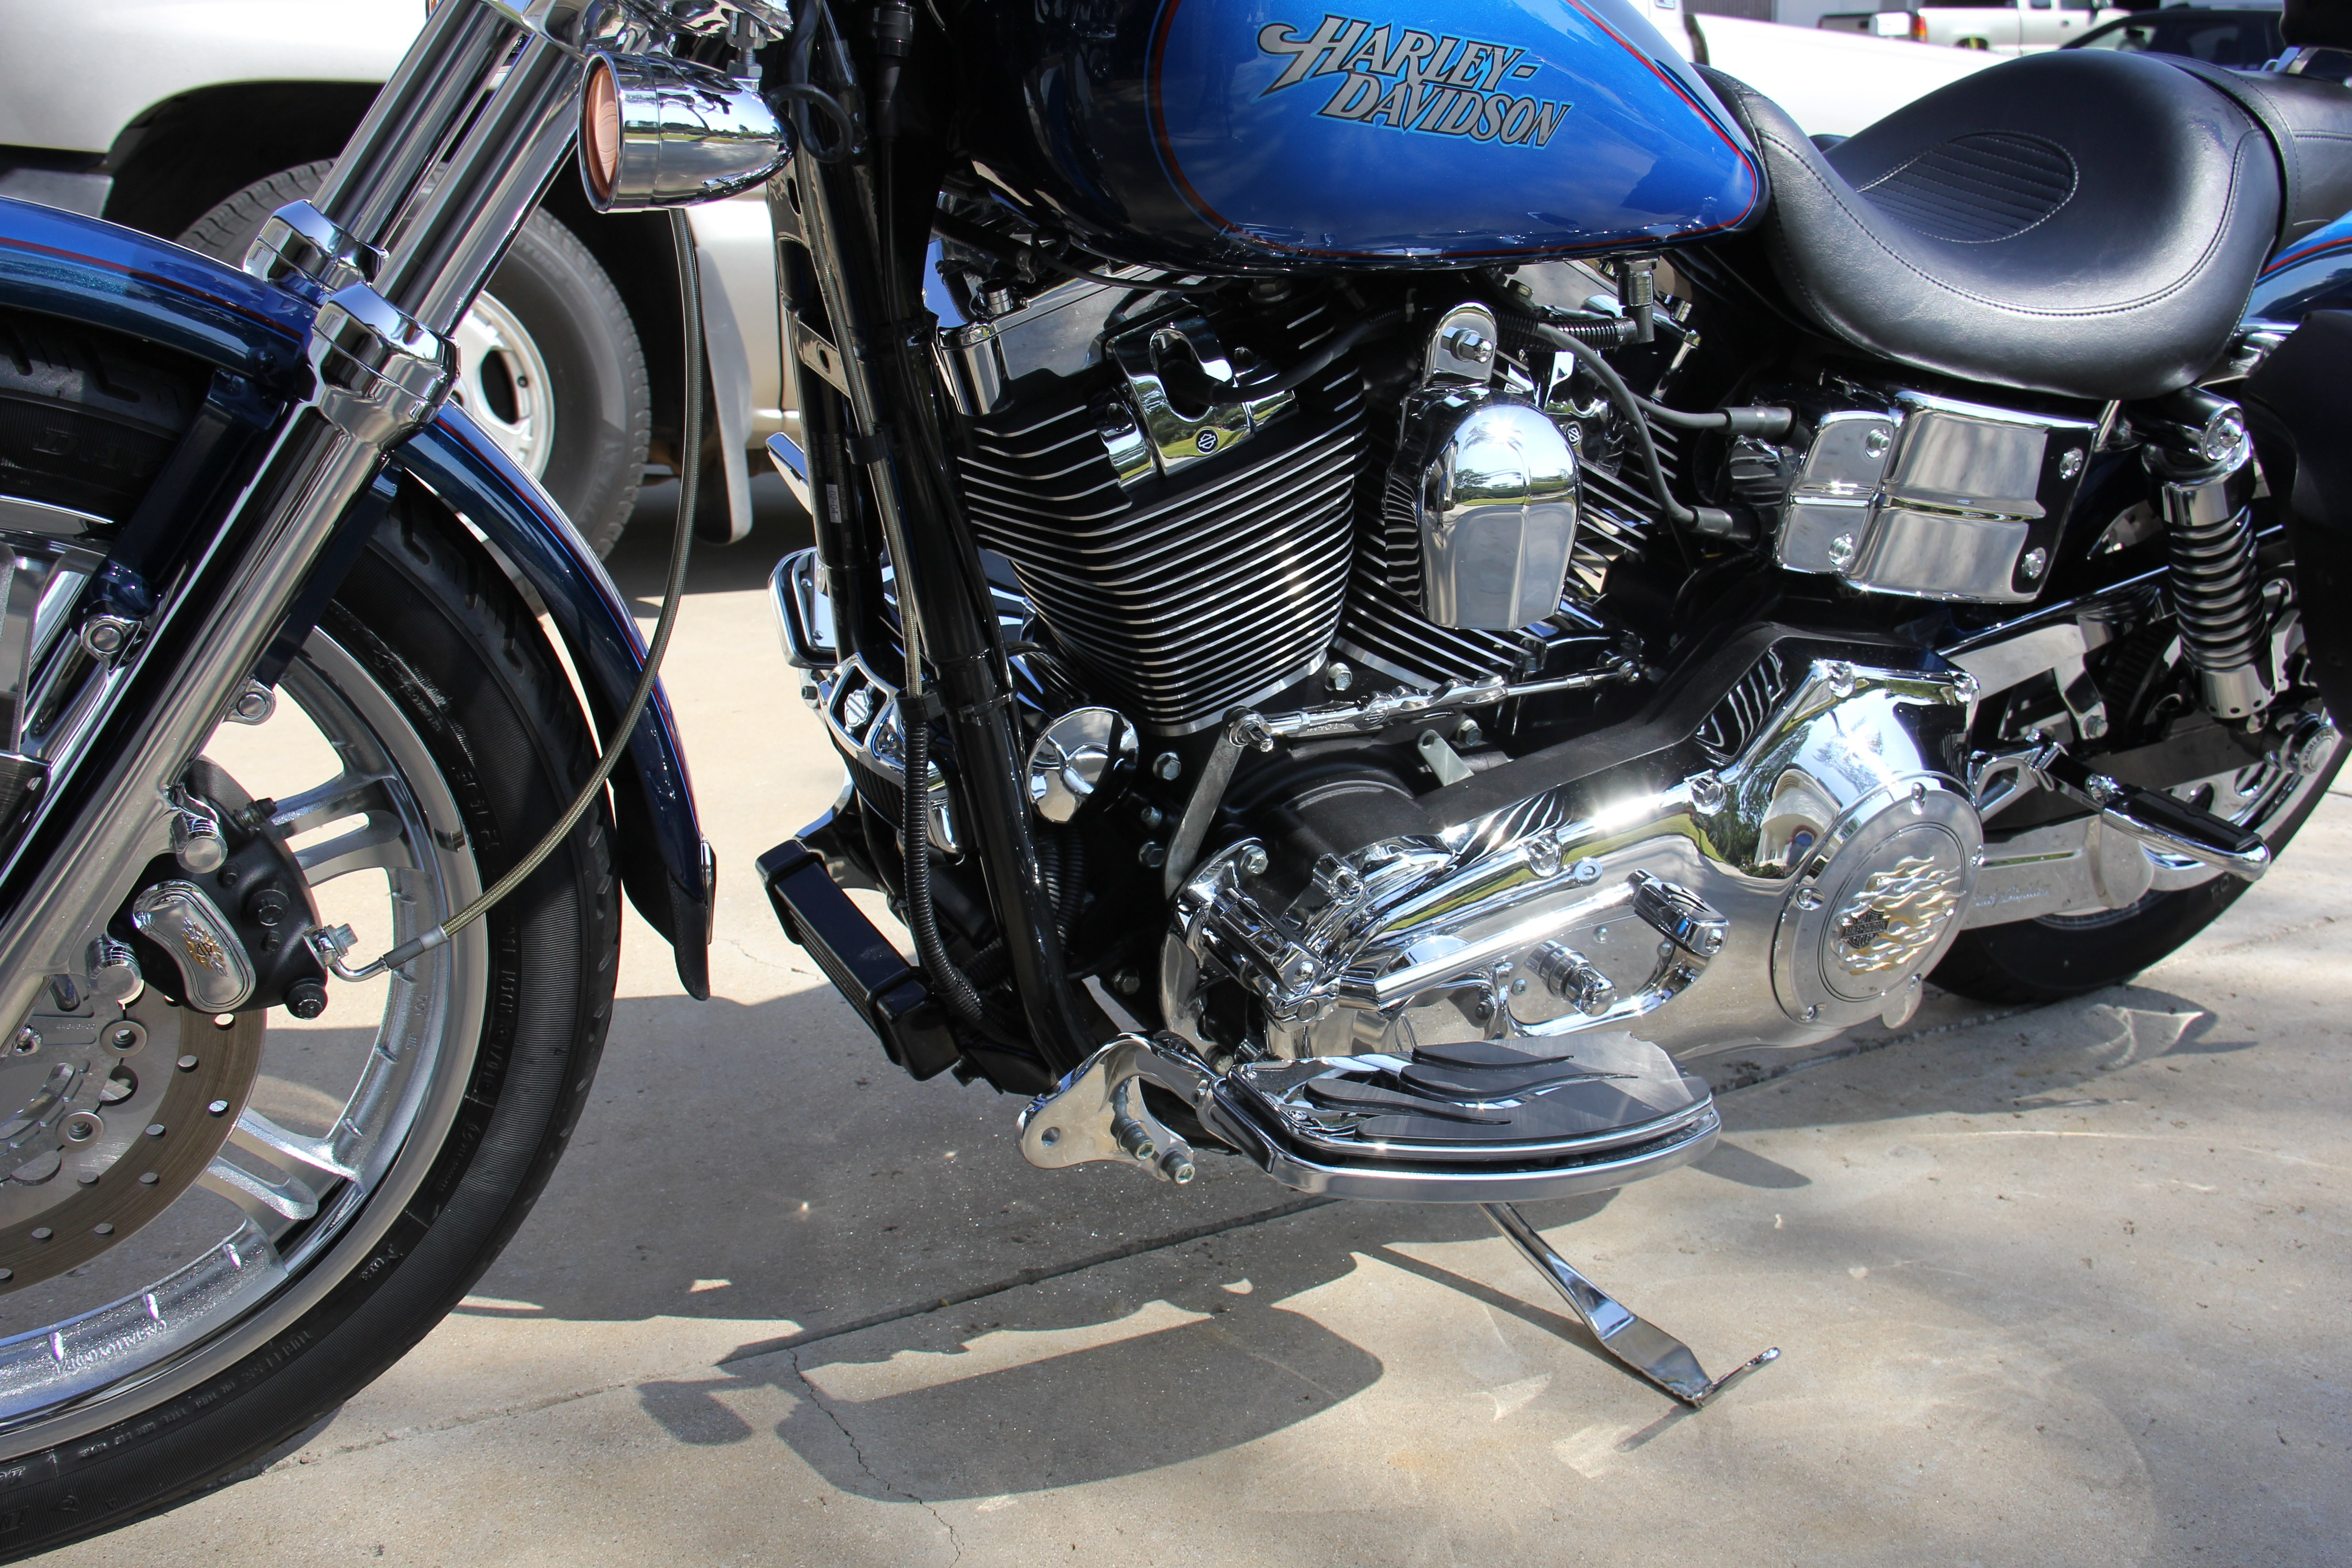 Harley Davidson Dyna Low Rider For Sale San Diego >> Harley Davidson Dyna For Sale San Diego Ca 2019 2020 Top Upcoming Cars